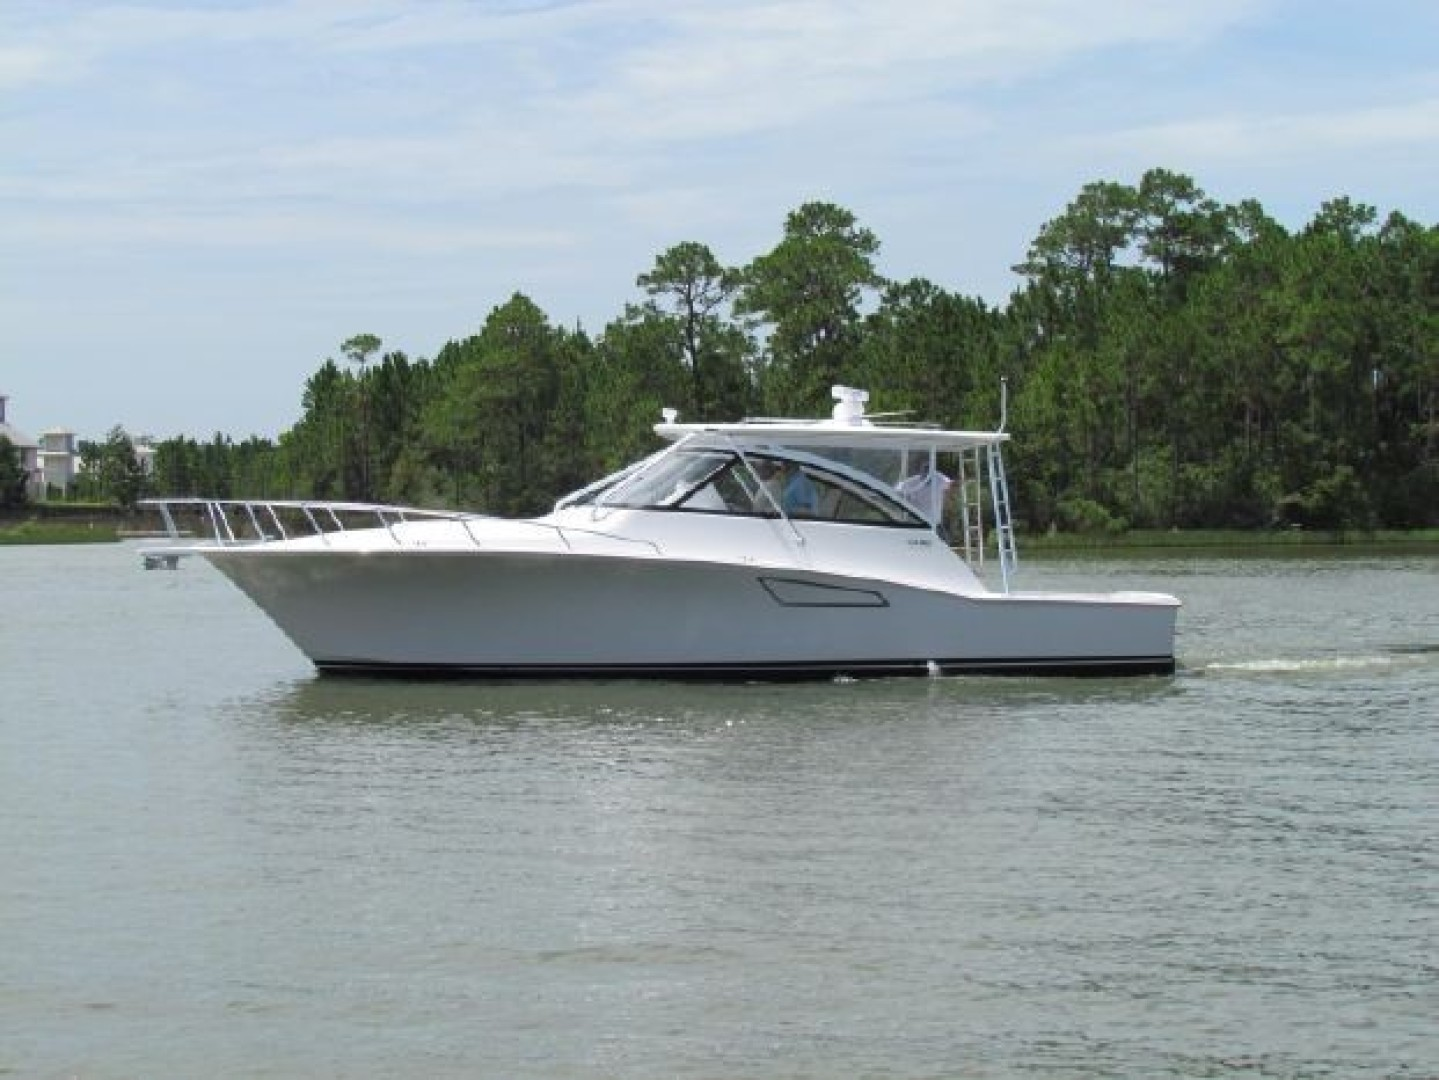 Cabo-41 Express cruiser 2019-41 Cabo New Express Cruiser Orange Beach-Alabama-United States-1596900 | Thumbnail